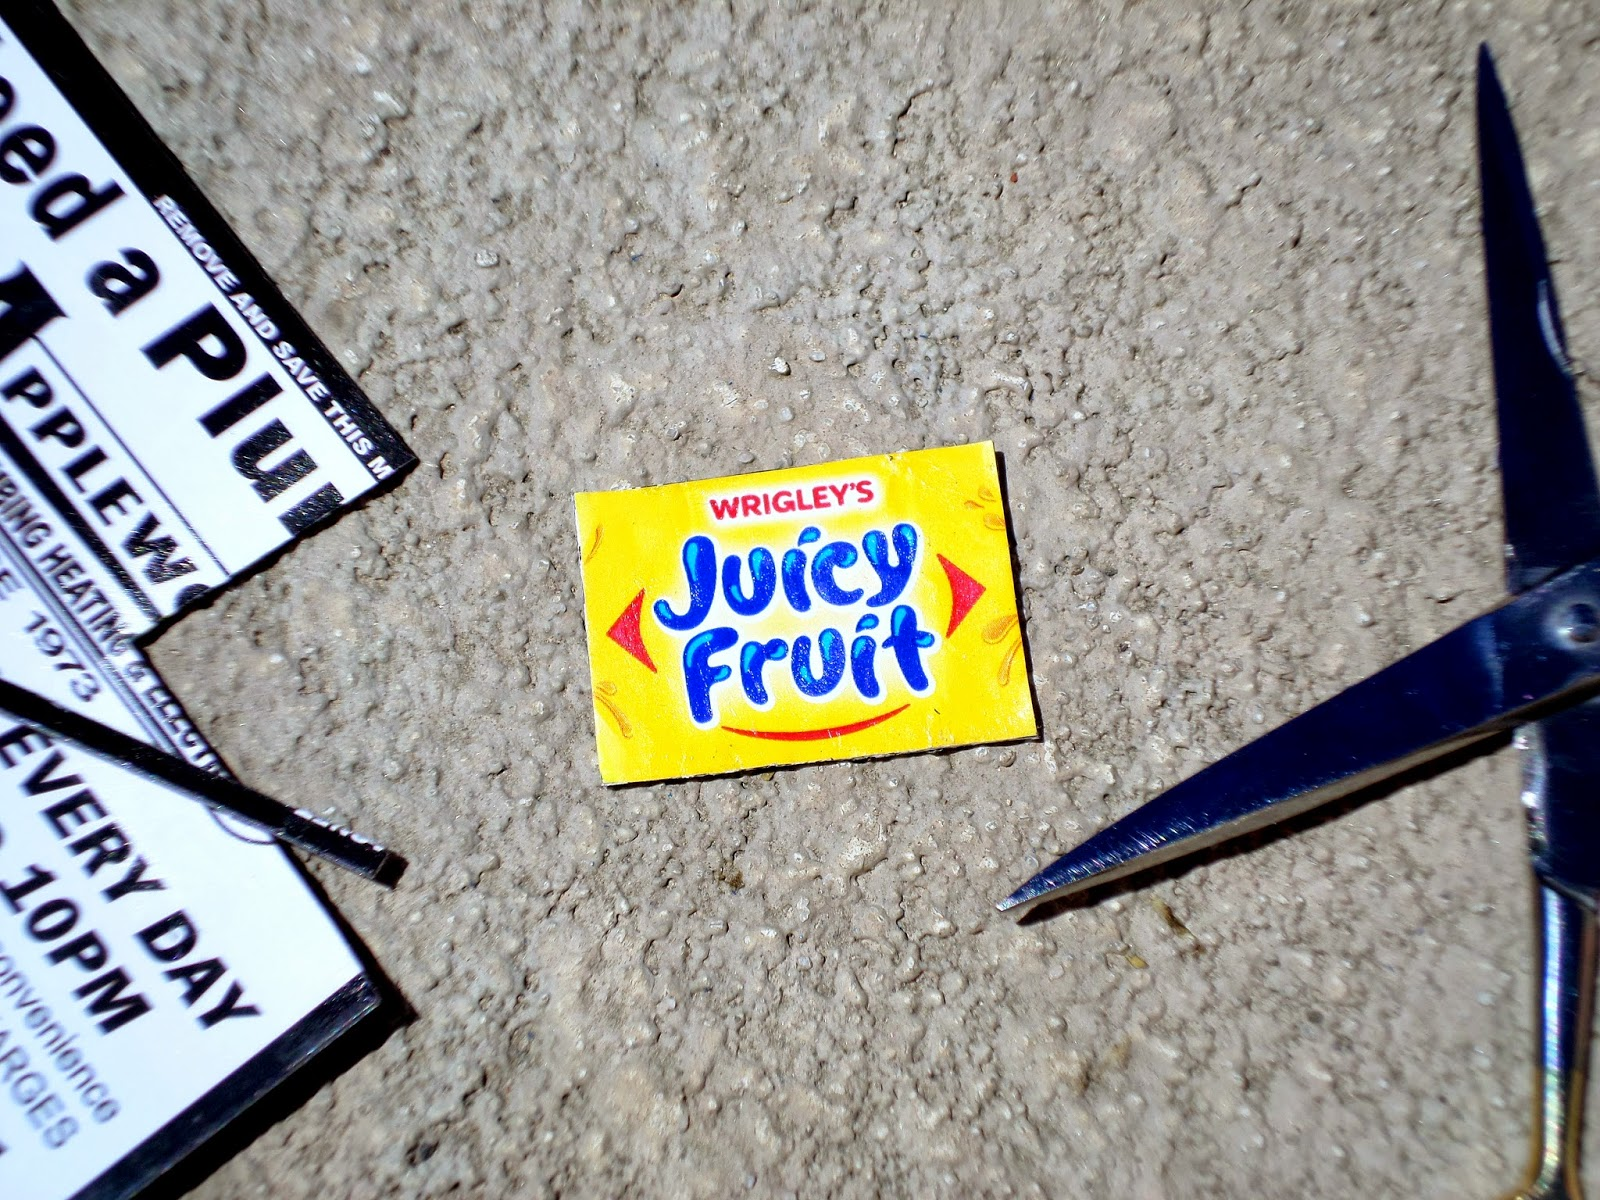 Summer Fun Juicy Fruit Gum Upcycled Wrapper Magnet Cut #JuicyFruitFunSide #shop